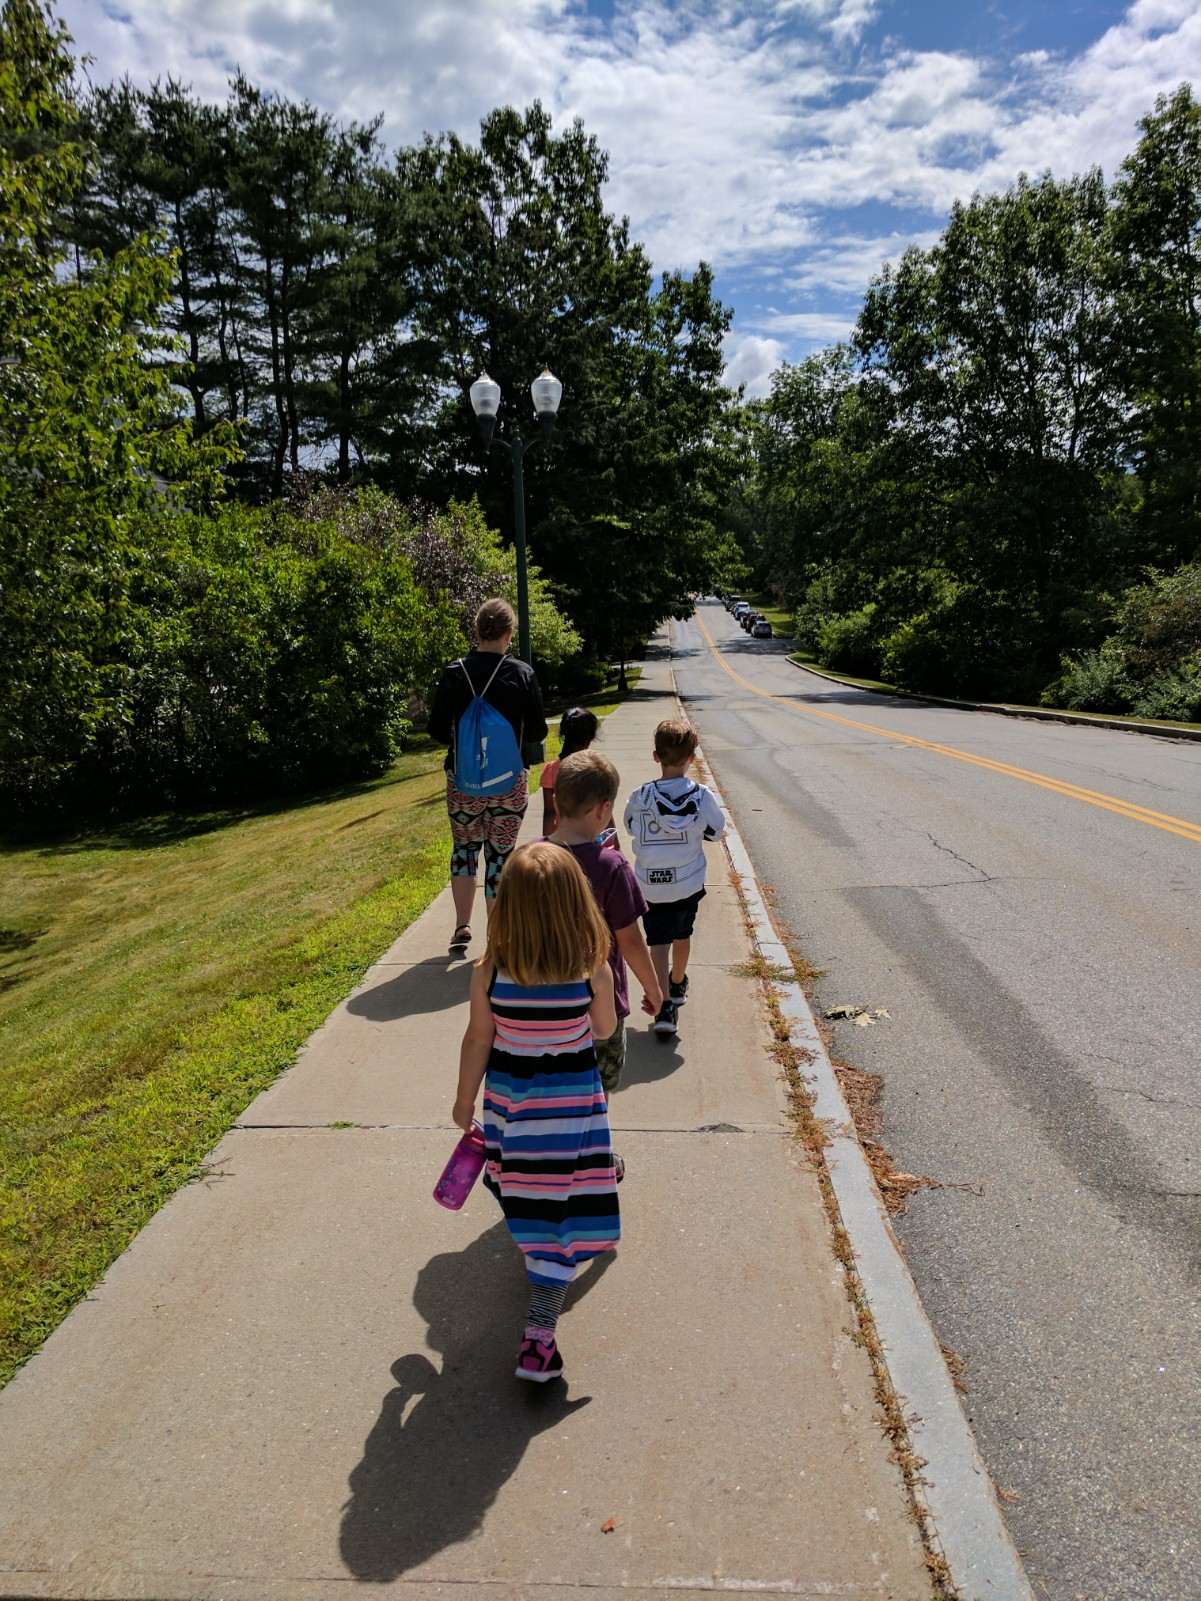 Kids walking on sidewalk with light pole